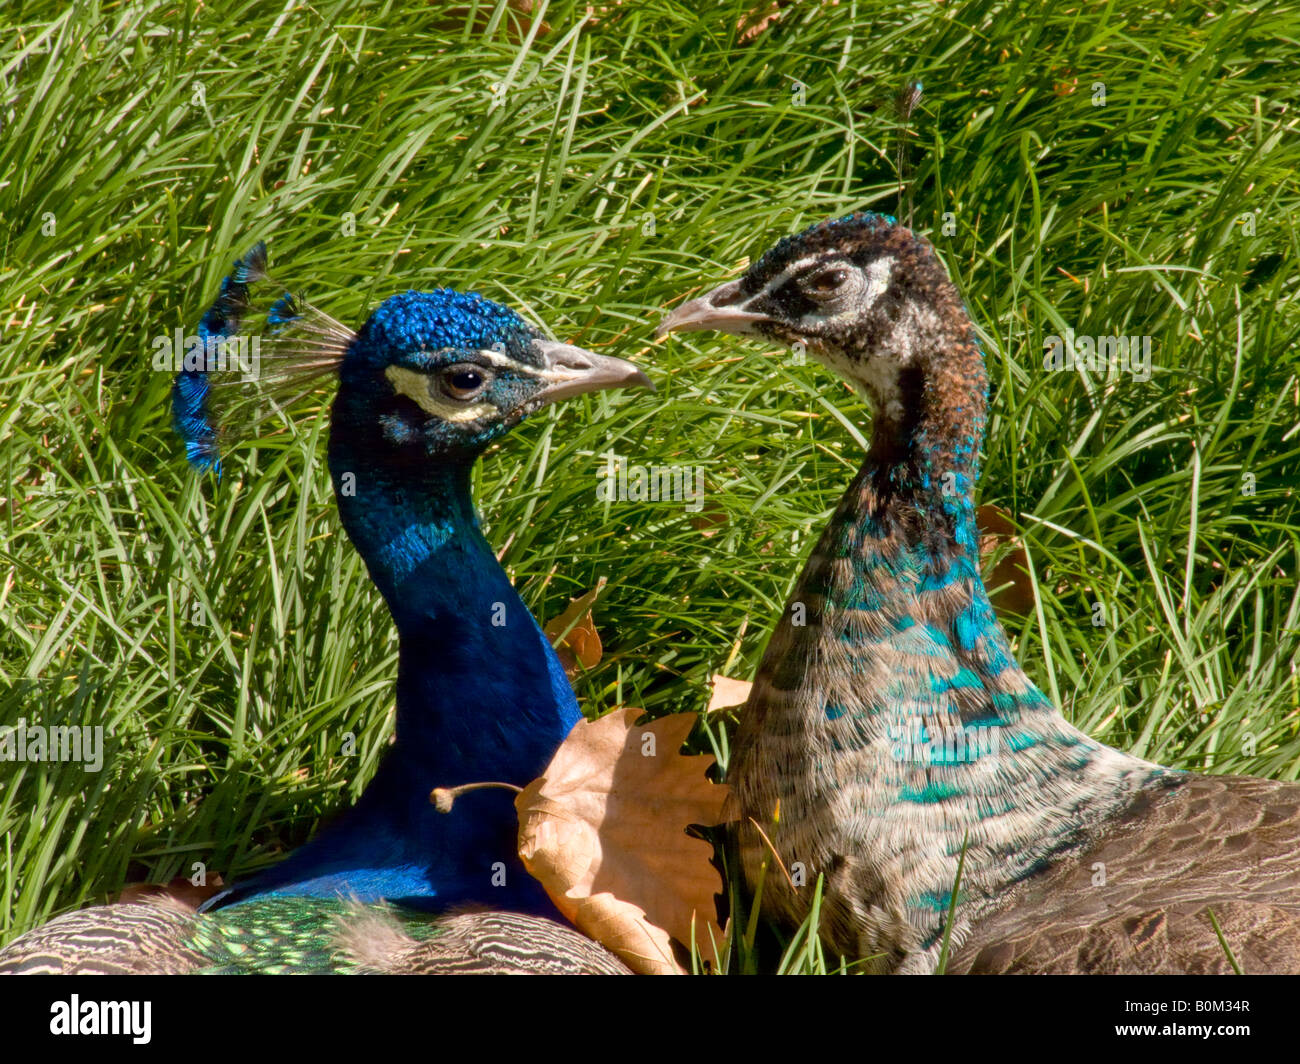 Male And Female Peacocks